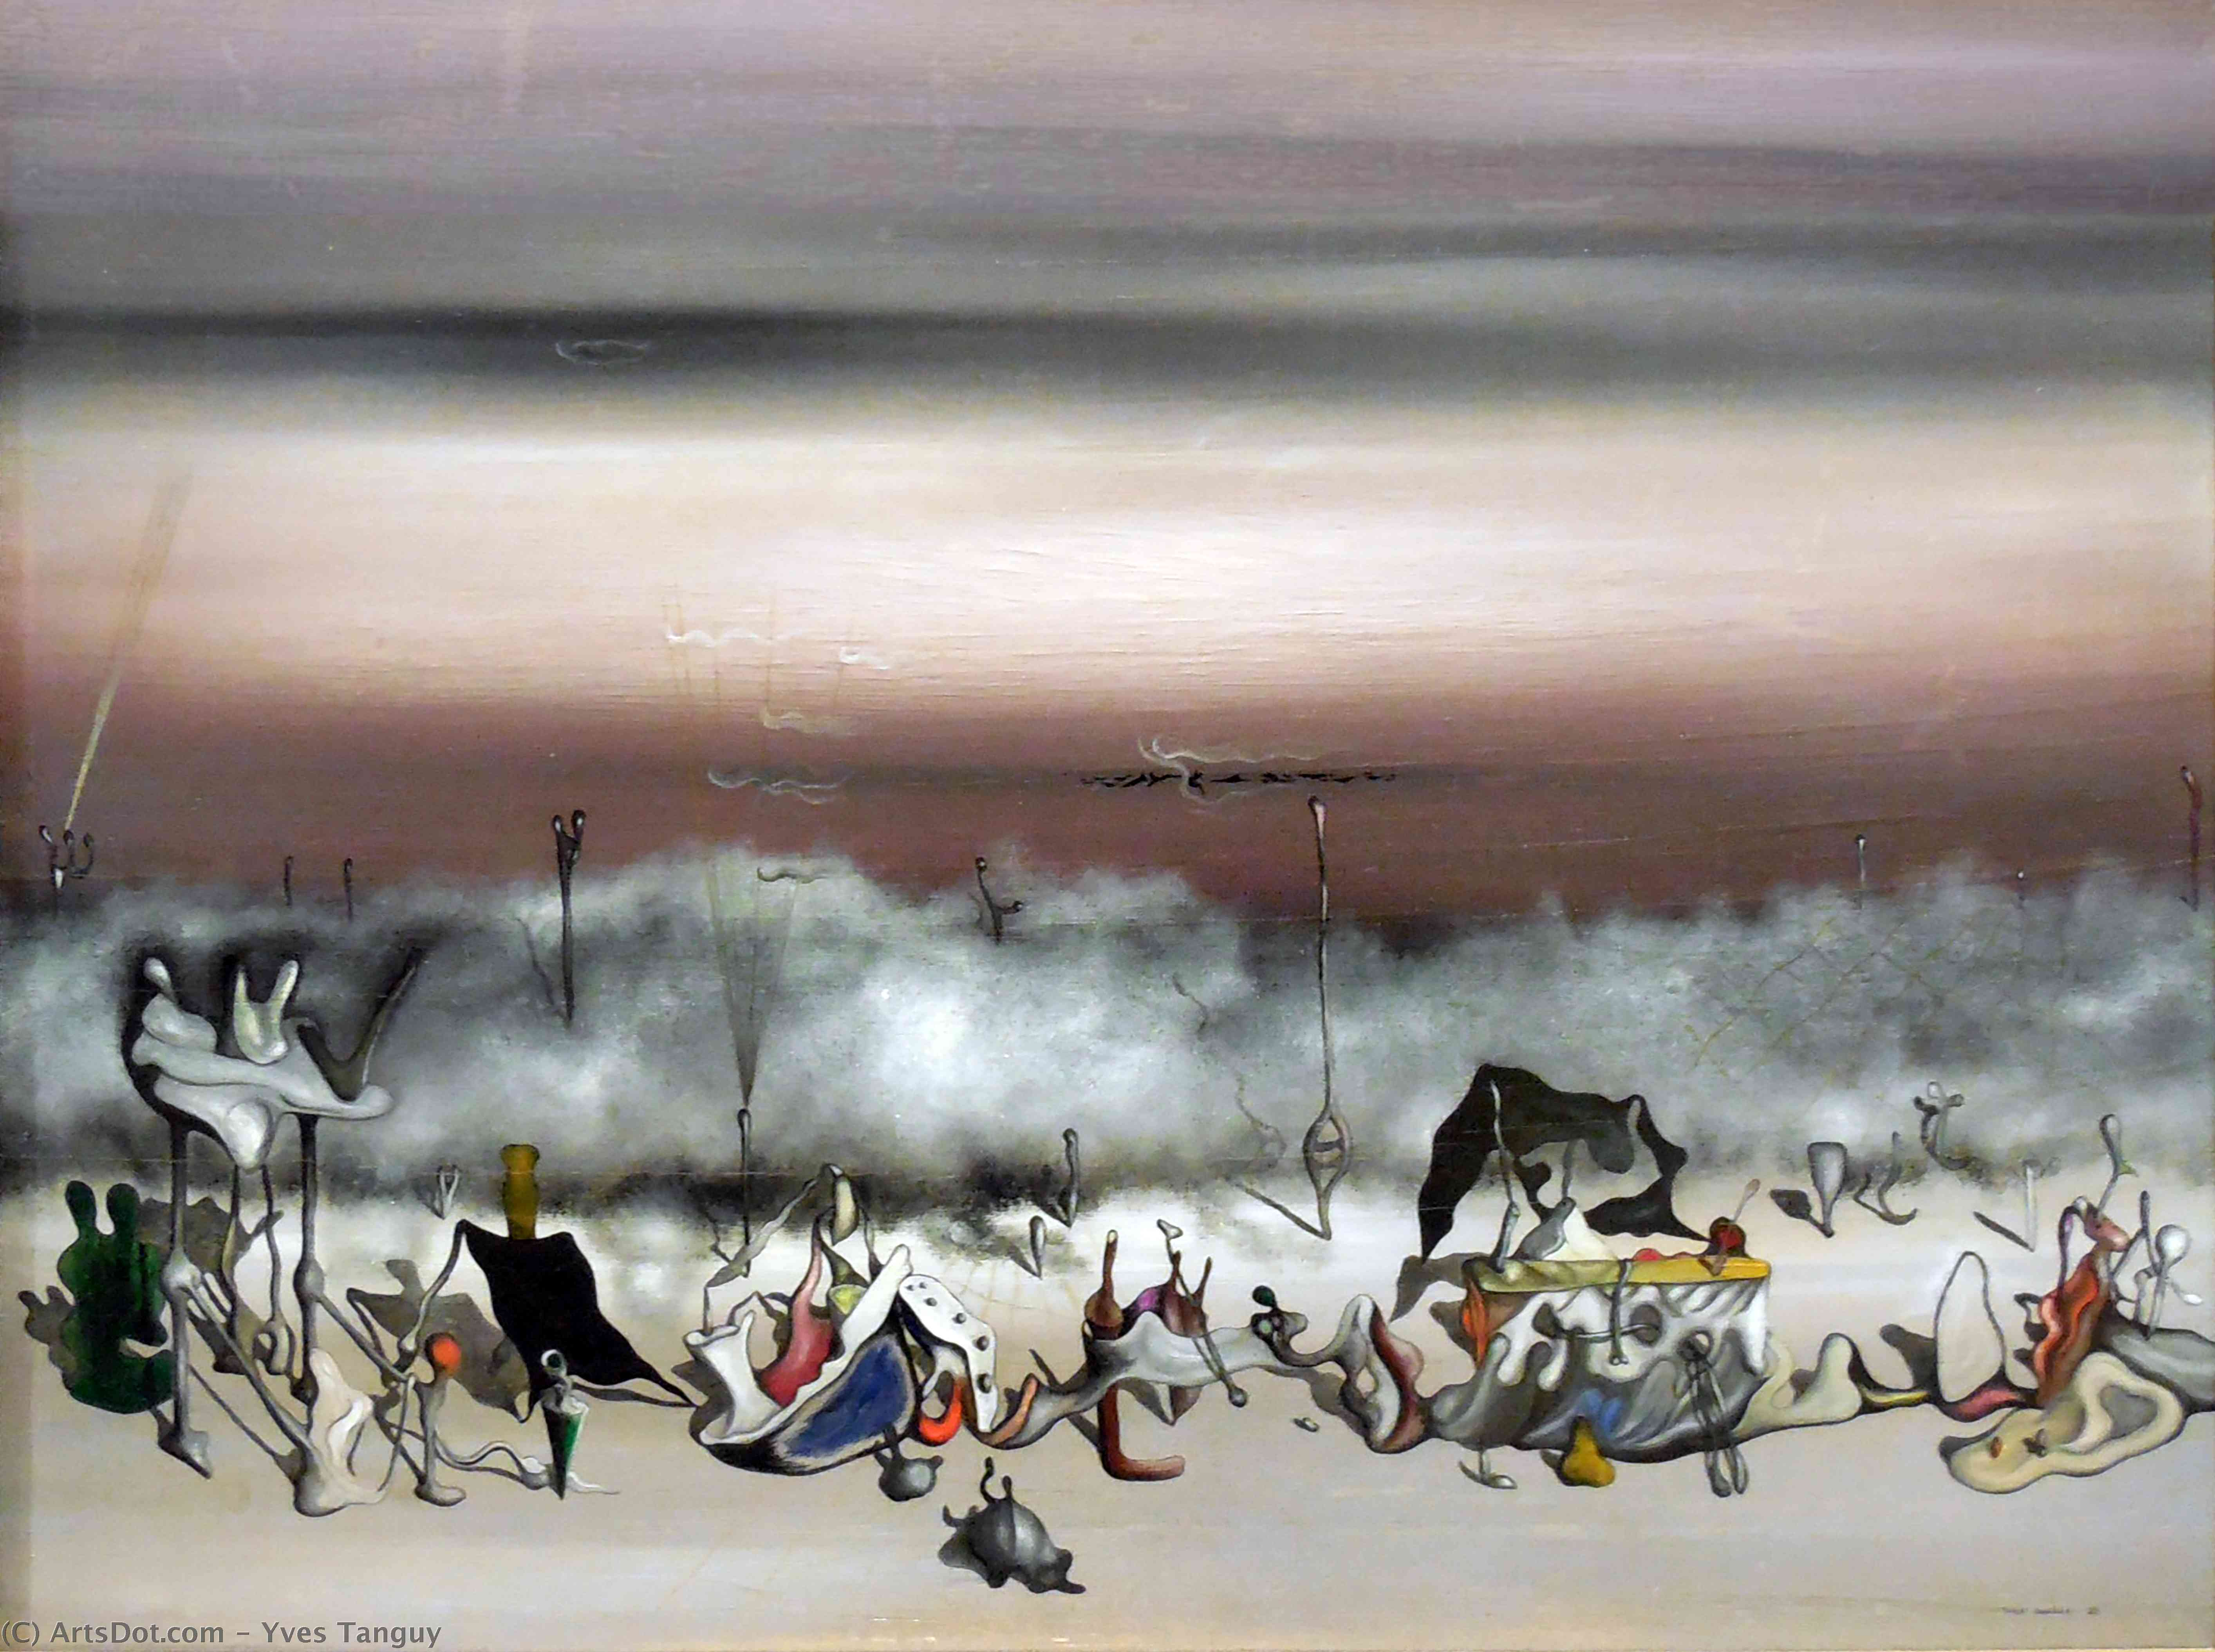 Wikioo.org - The Encyclopedia of Fine Arts - Painting, Artwork by Yves Tanguy - The Ribbon of Excess